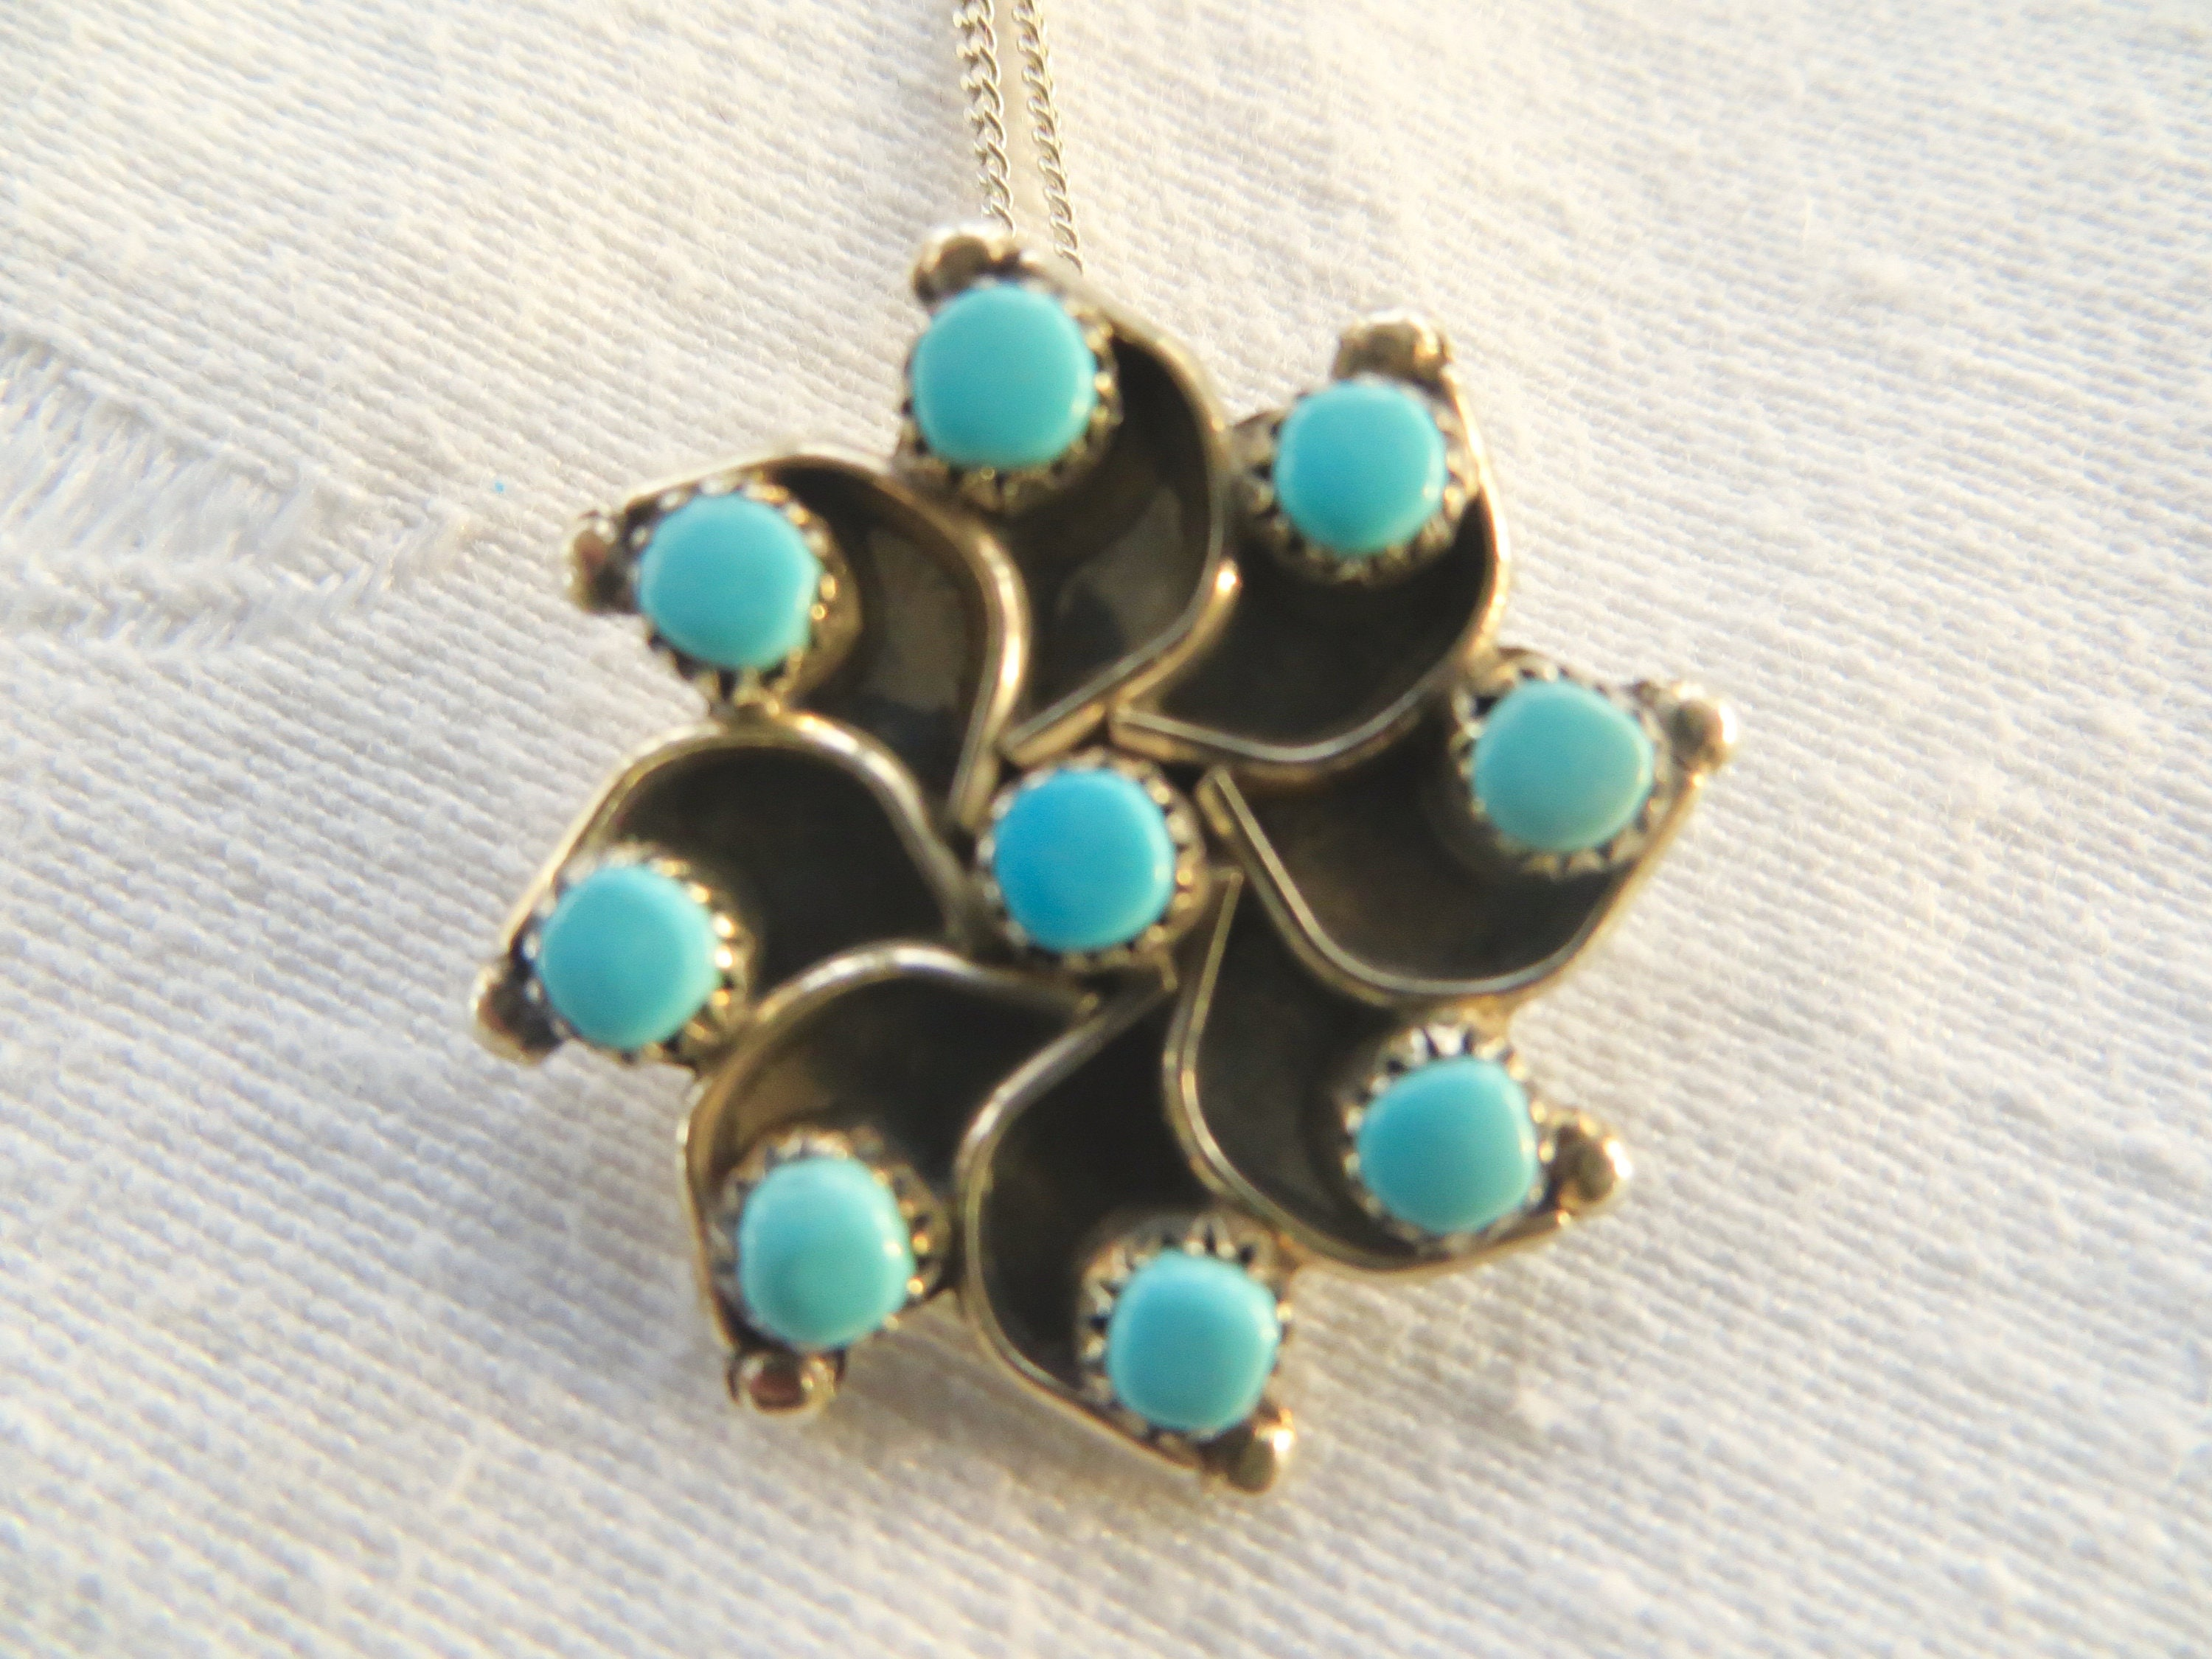 dainty pin coral pendant my addition share sterling turquoise the etsy latest choker to zuni shop excited handmade inlay